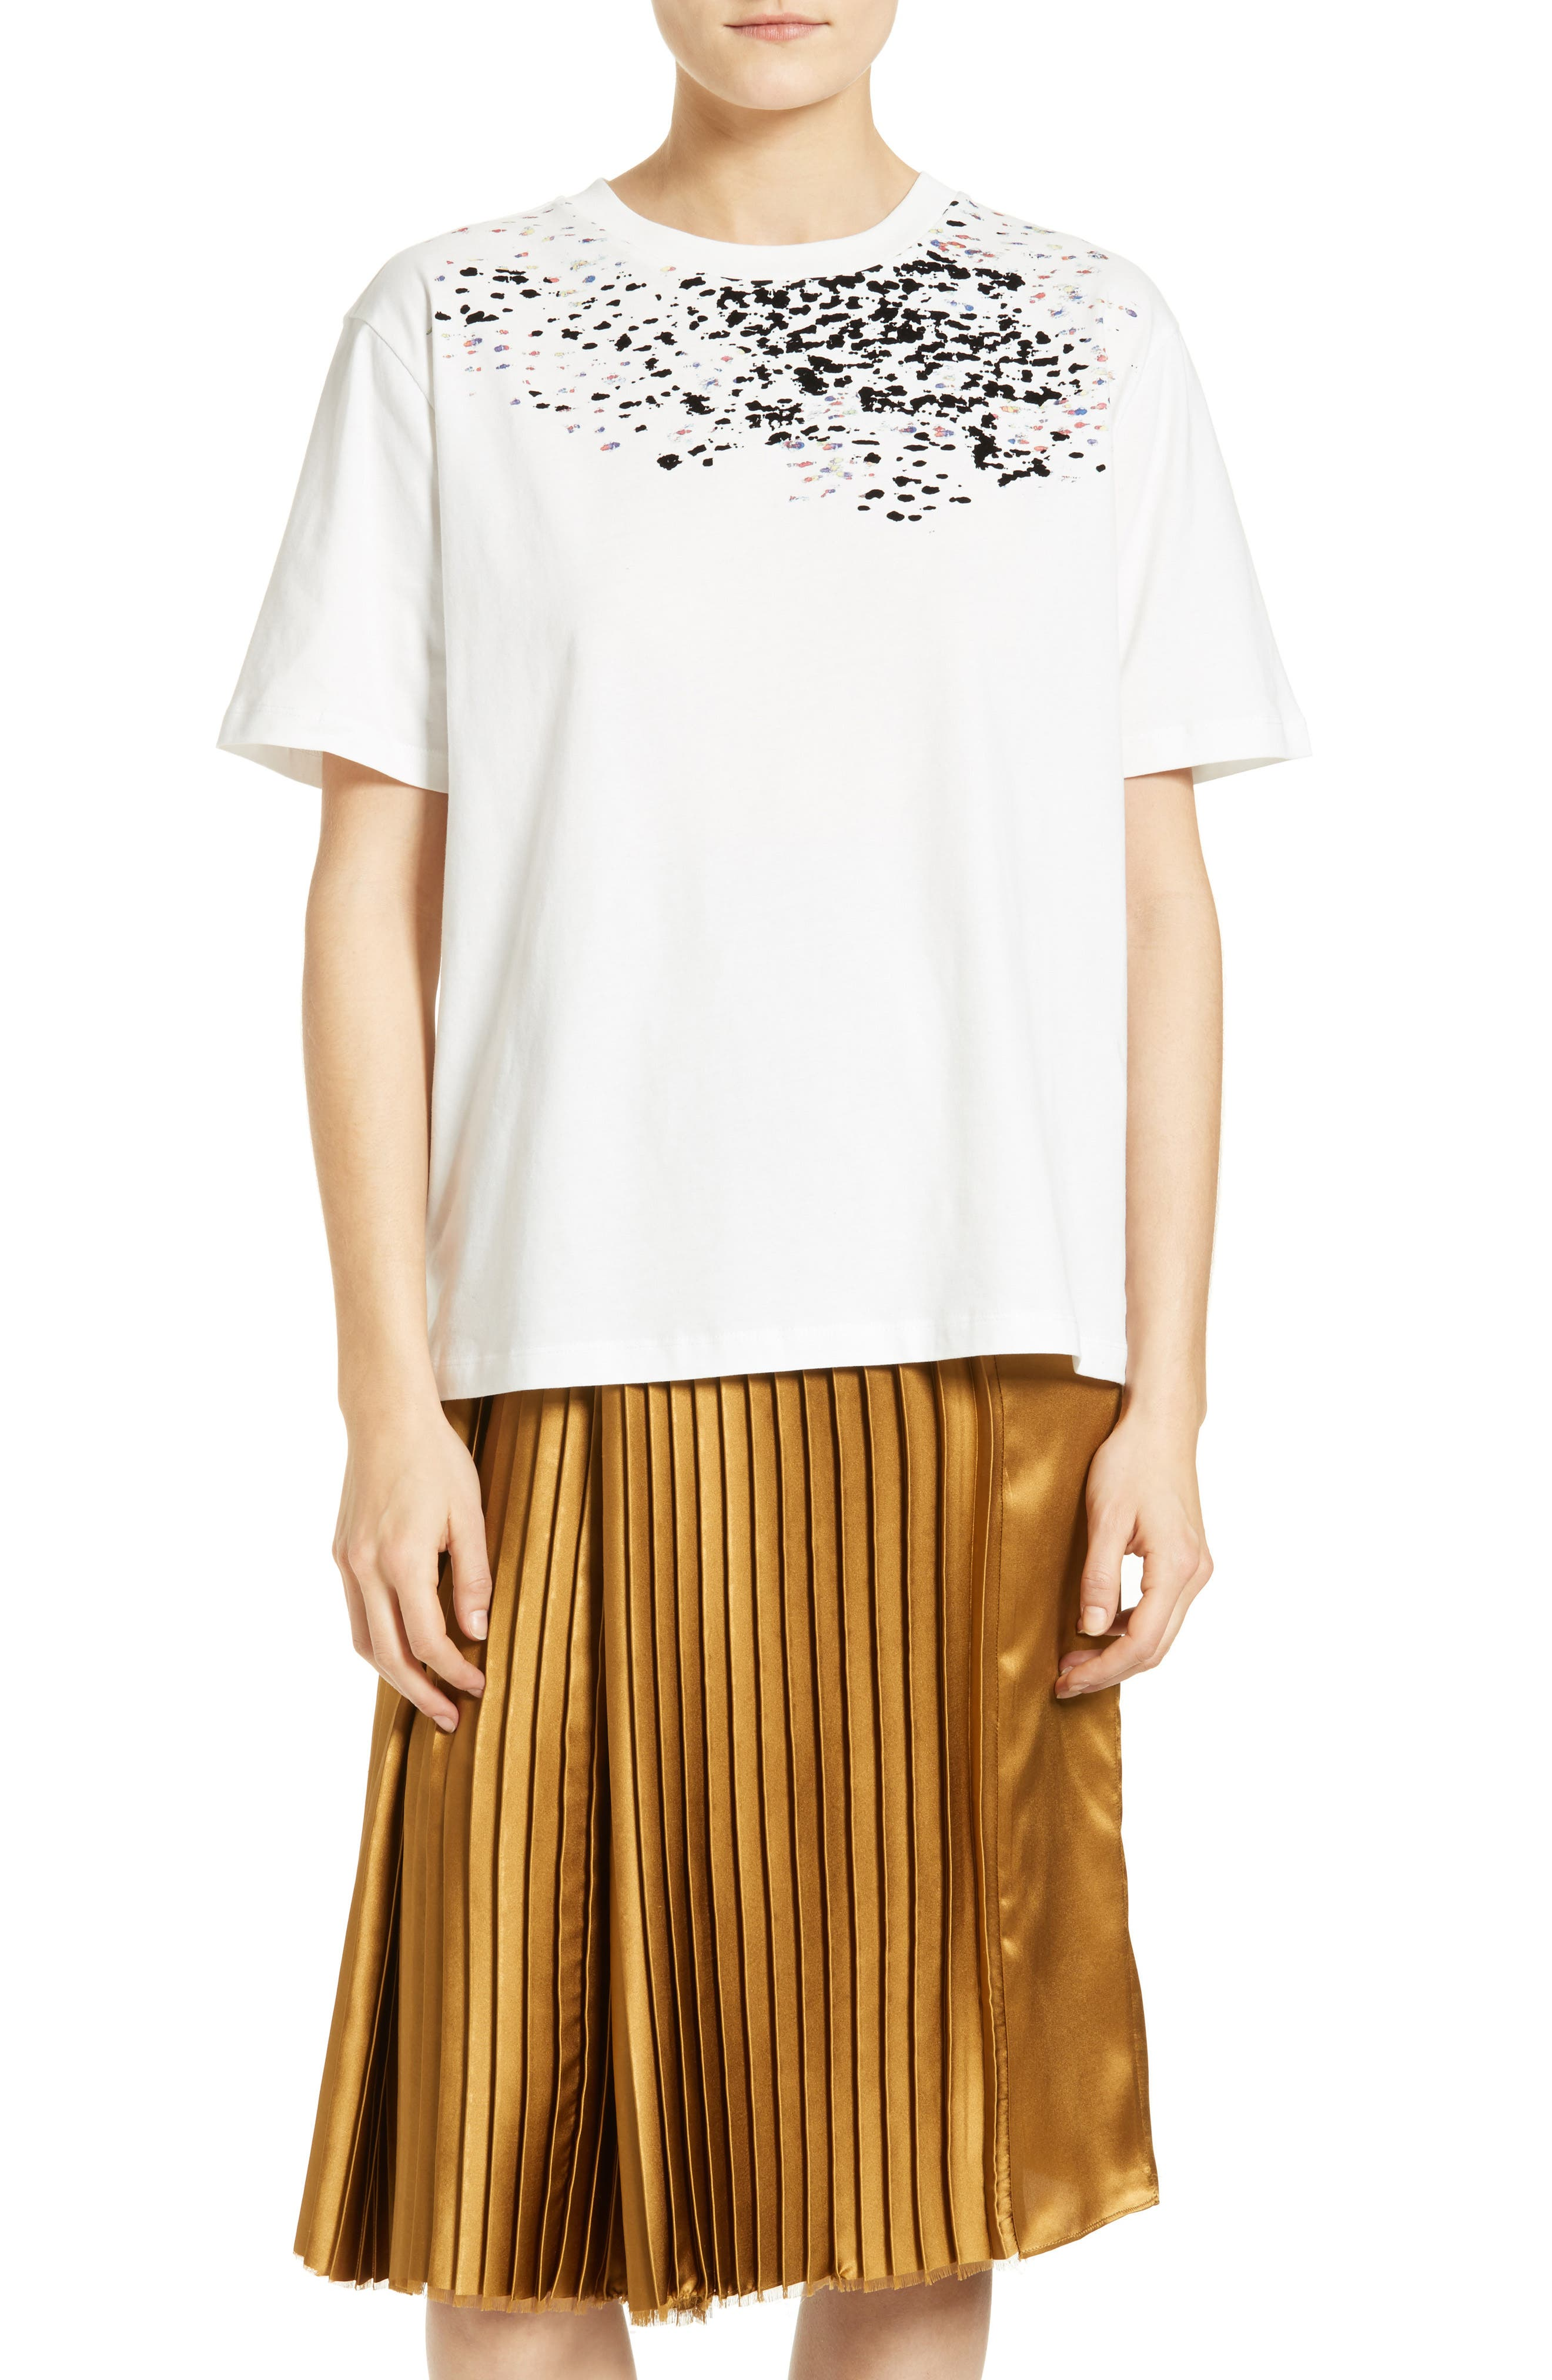 Public School Adara Graphic Tee